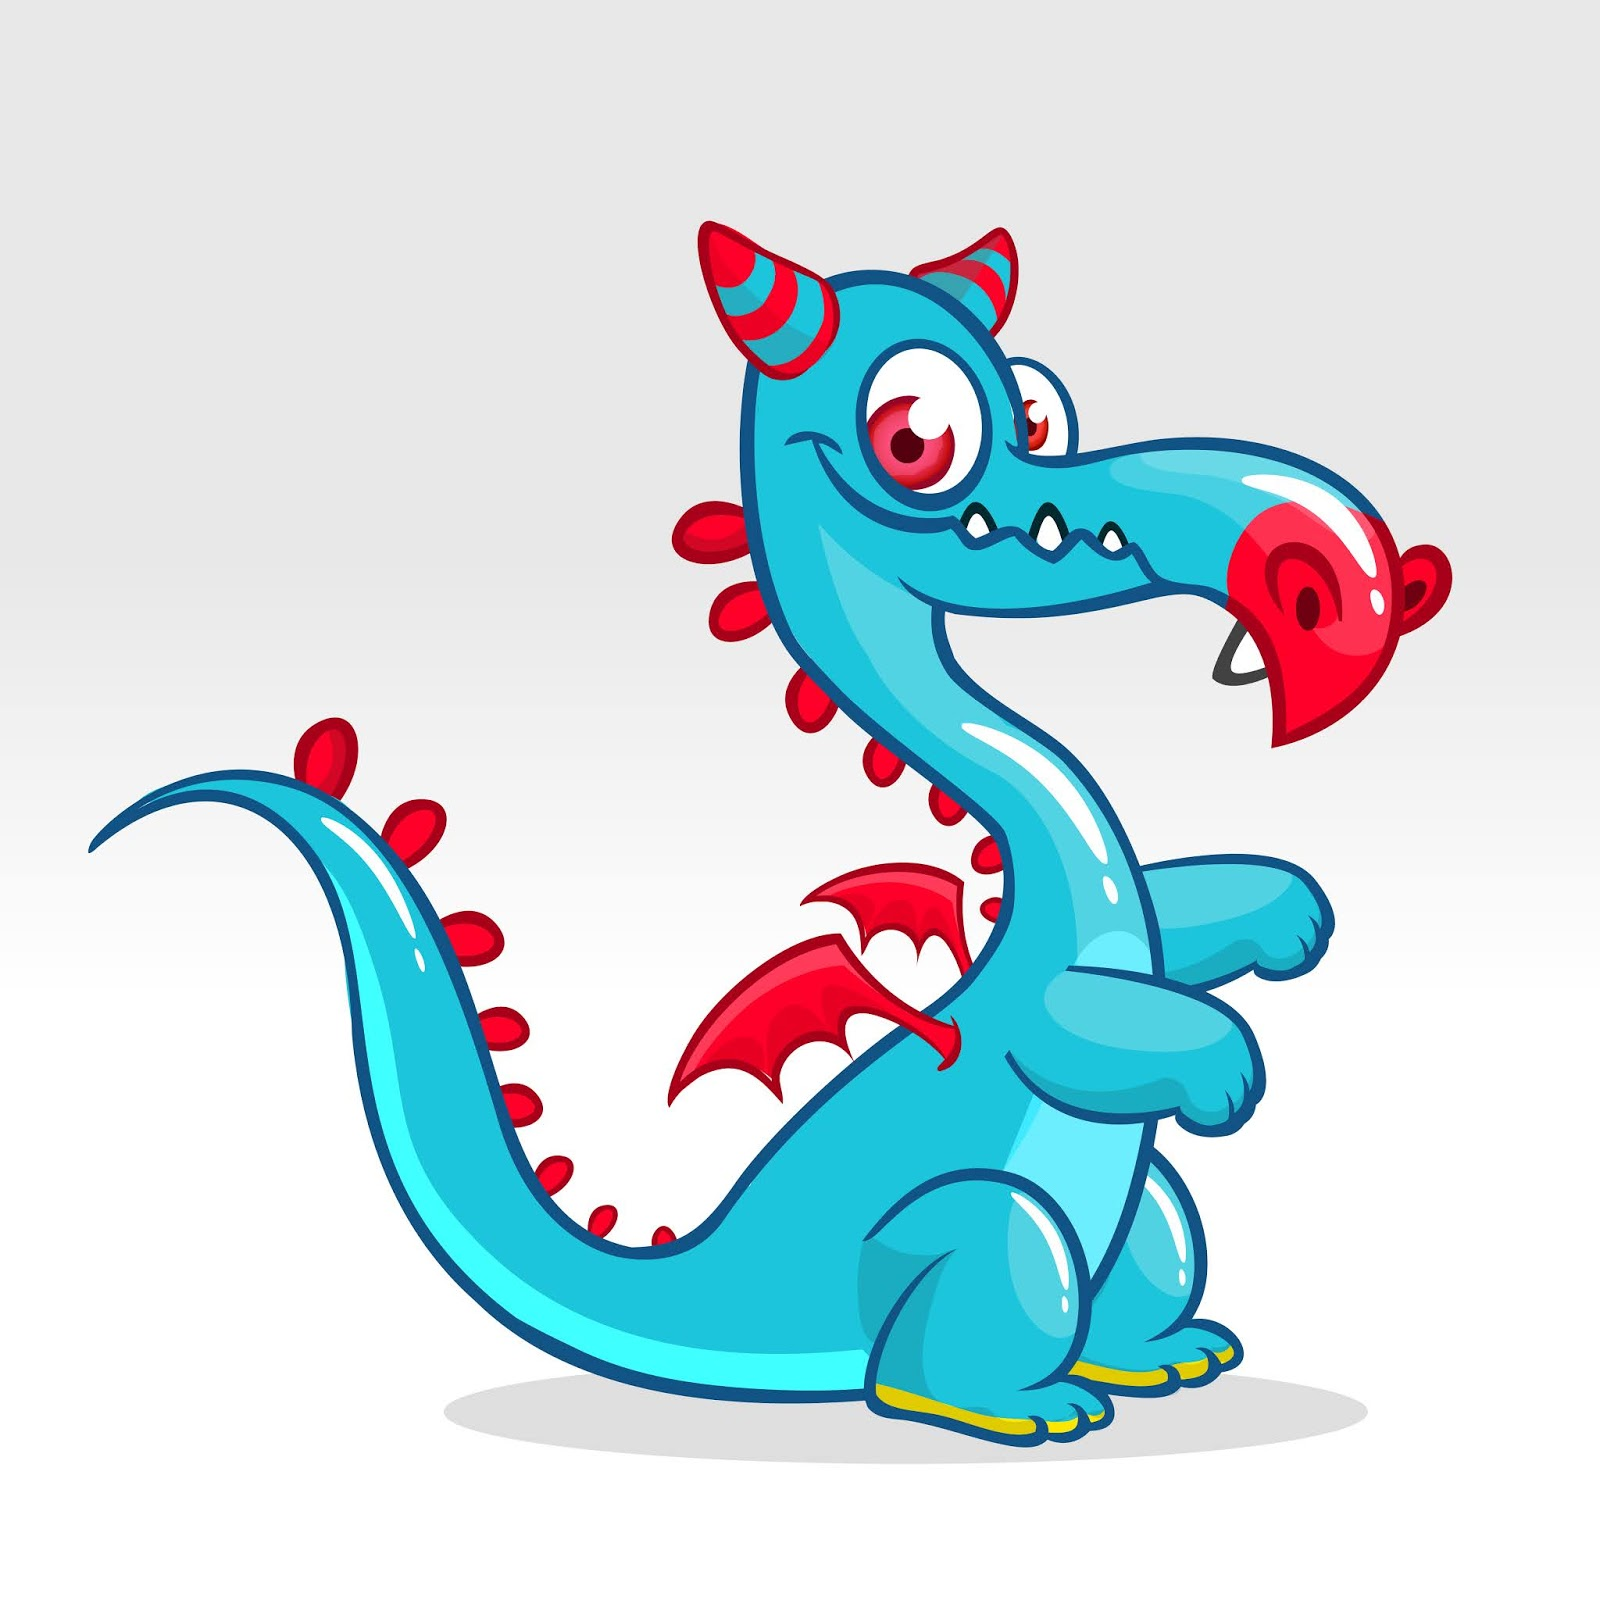 Funny Cartoon Dragon Halloween Free Download Vector CDR, AI, EPS and PNG Formats